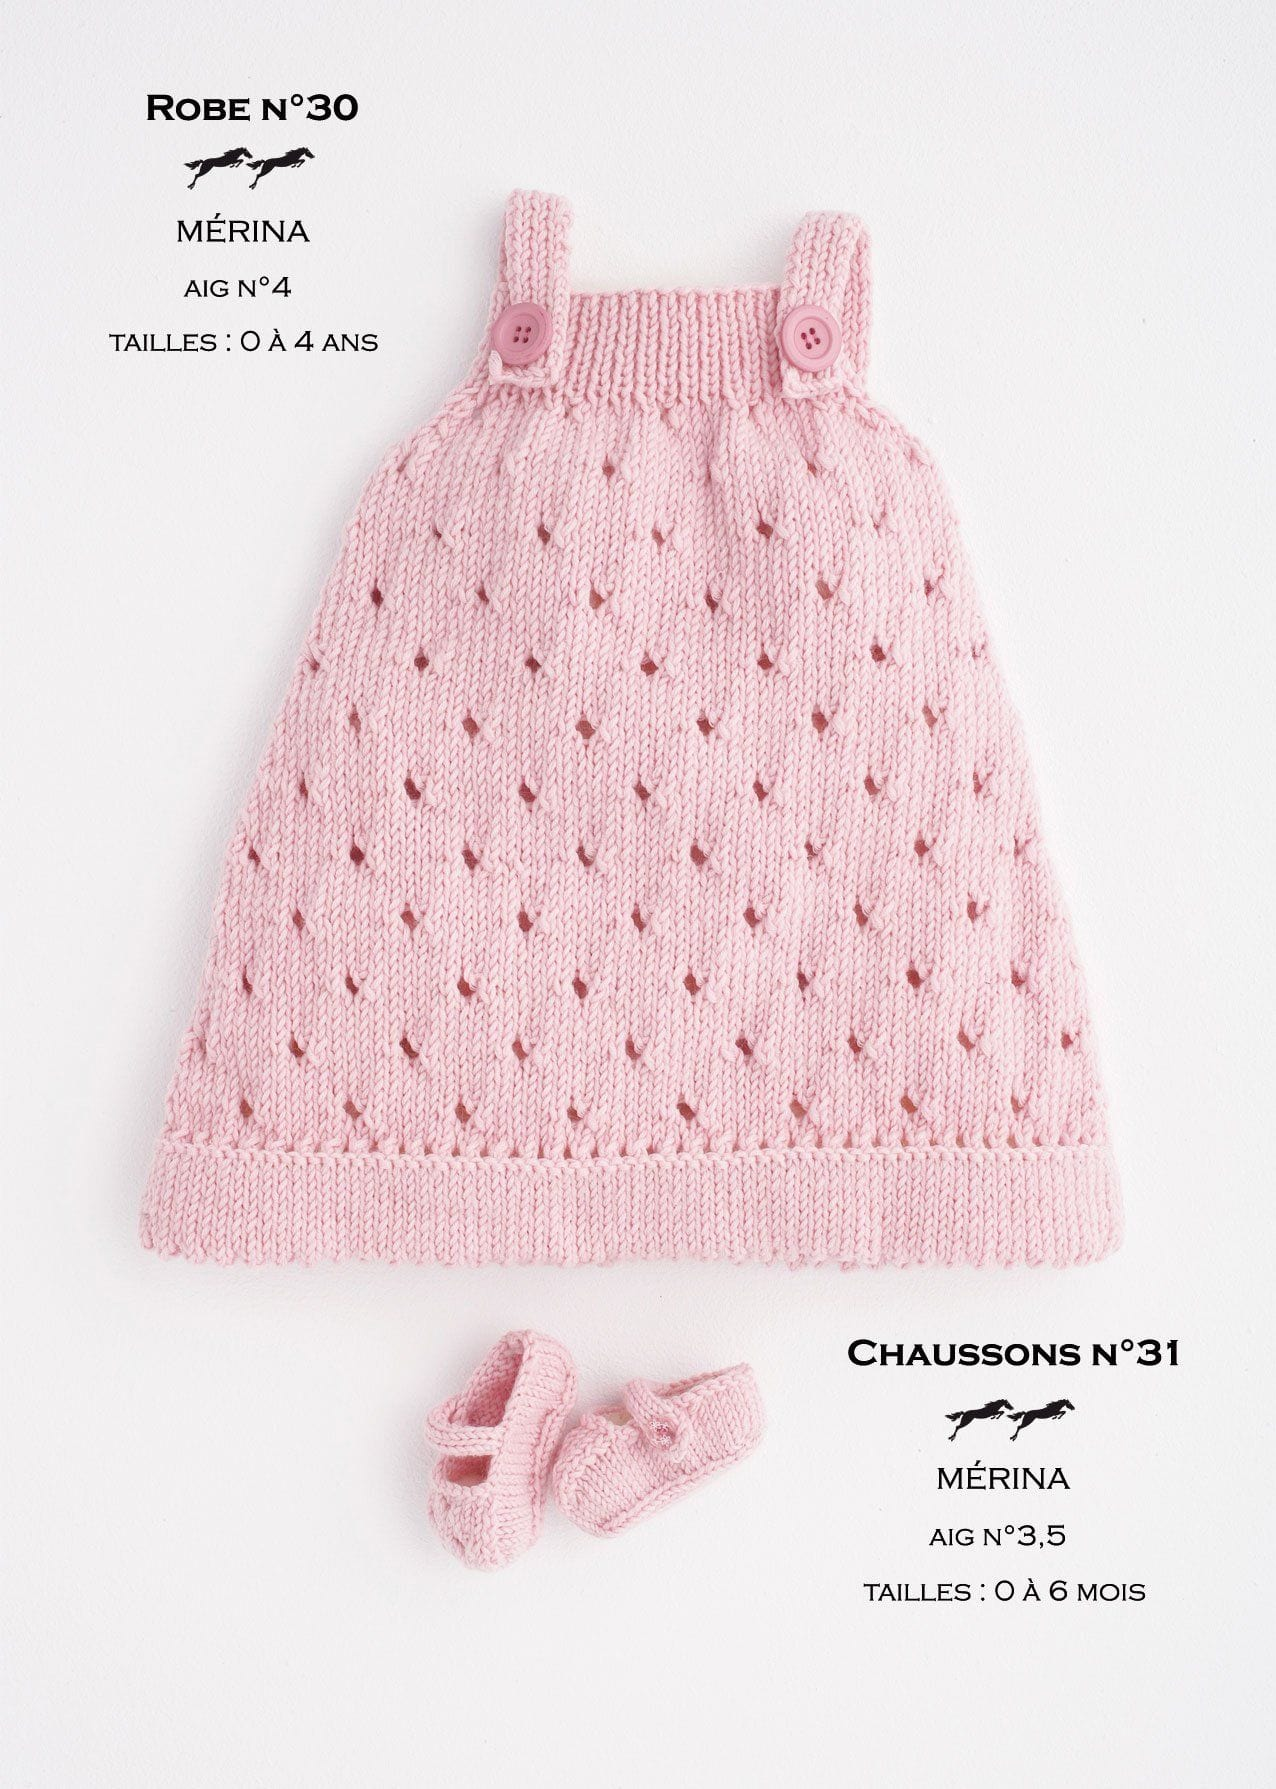 Modele robe tricot fille 3 ans